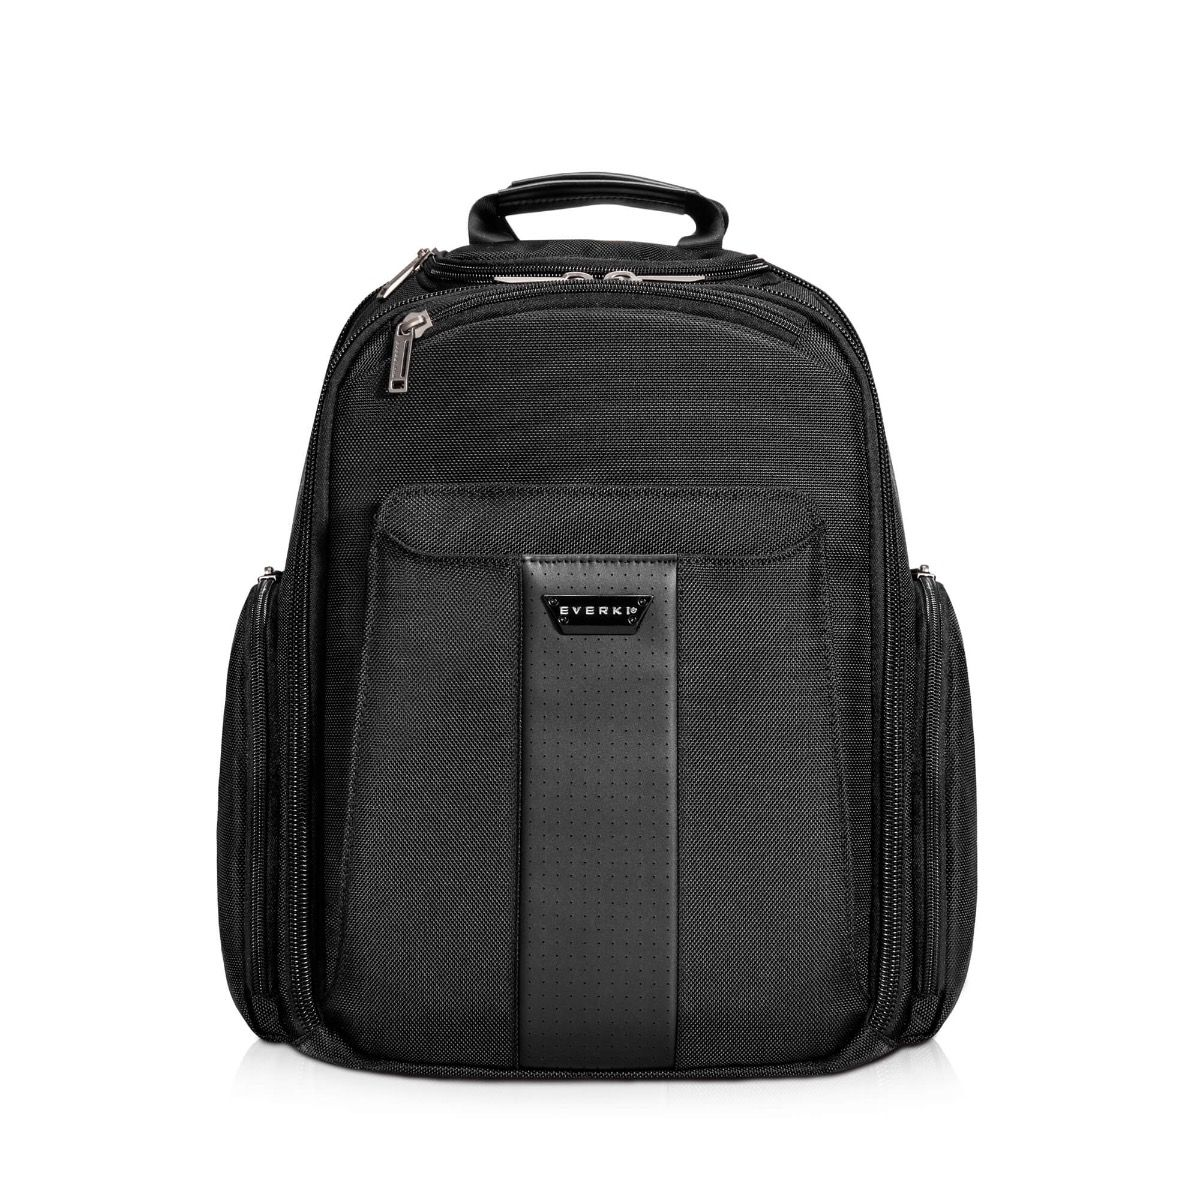 EVERKI Versa Travel Friendly 14 Inch Laptop Backpack